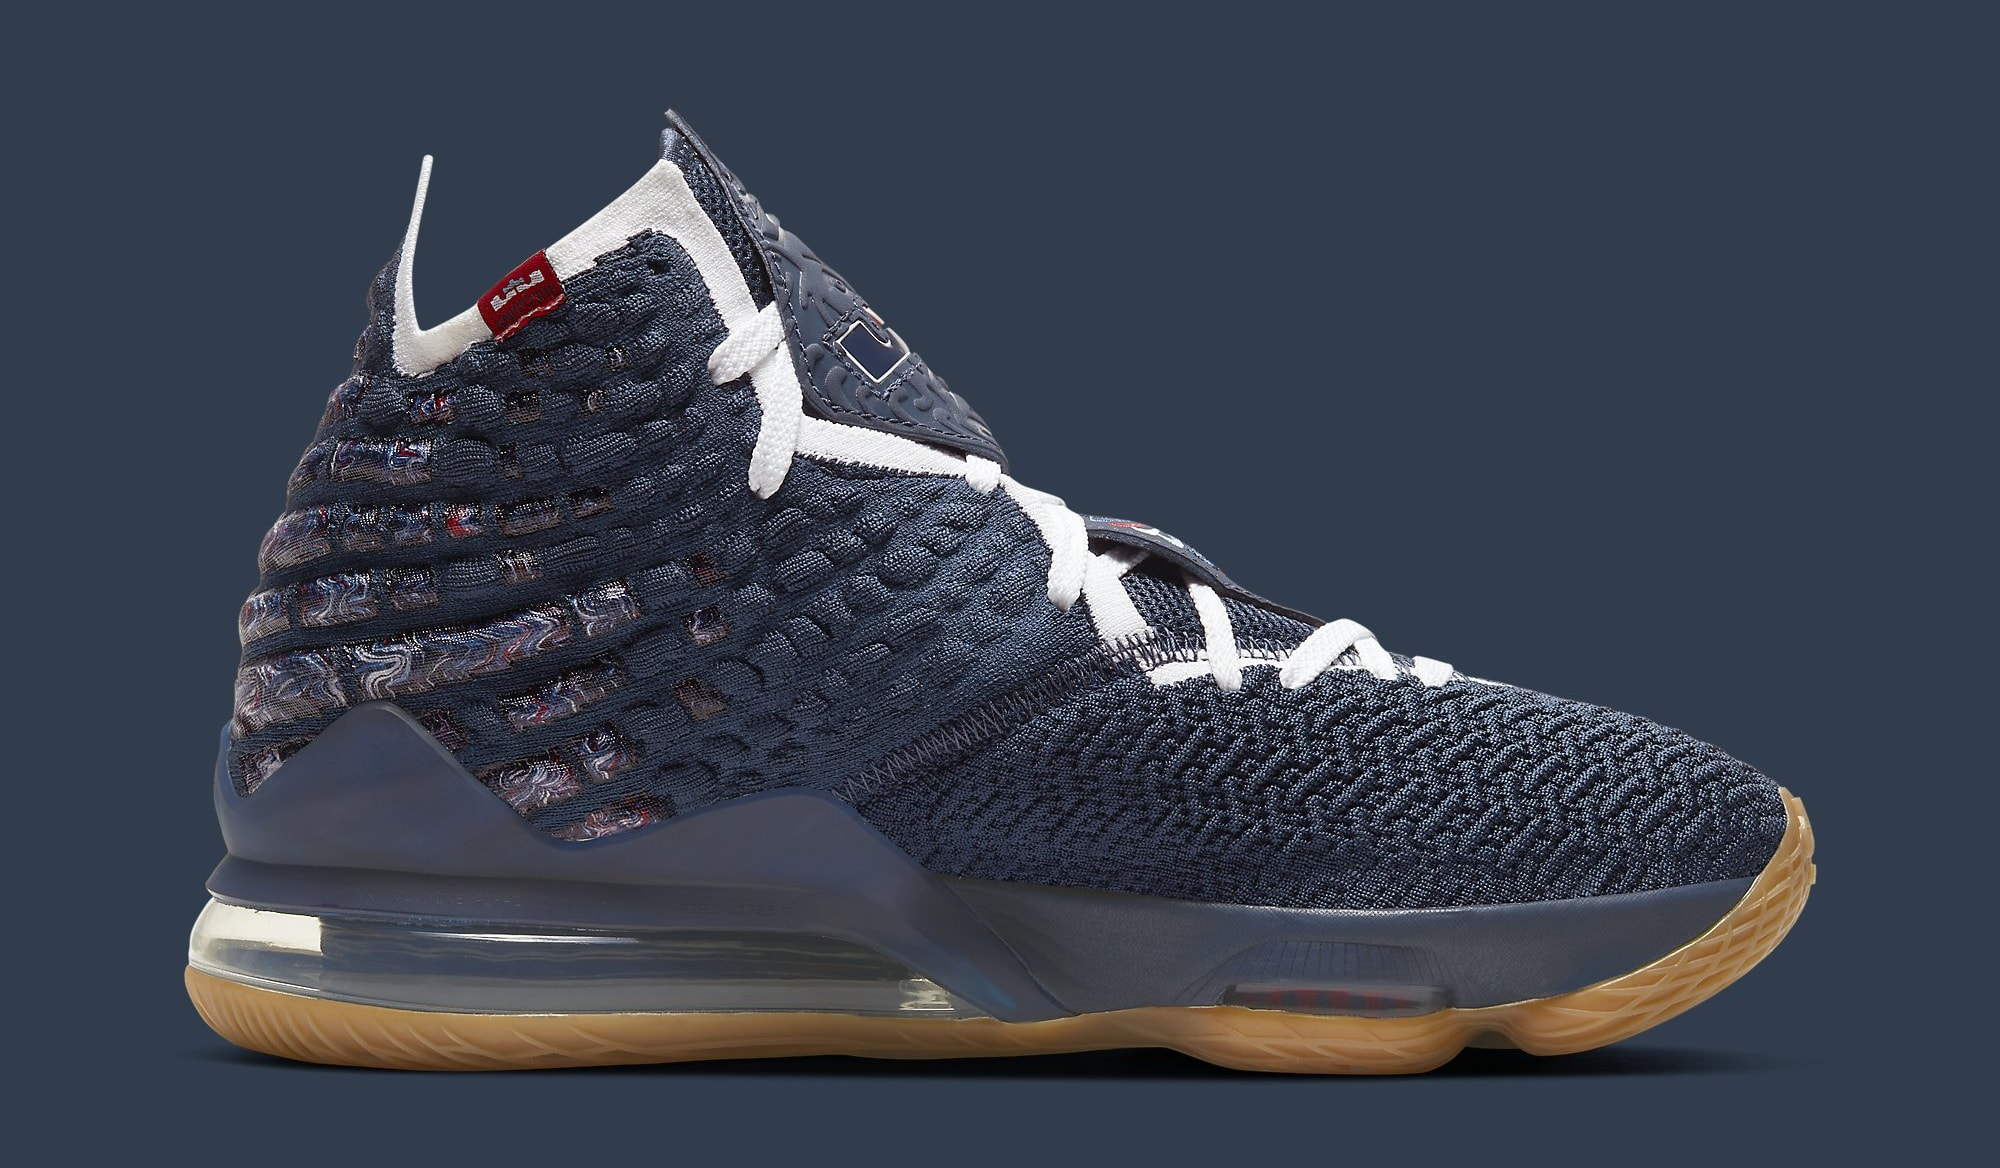 nike-LeBron-17-xvii-college-navy-white-game-royal-CD5056-400-release-date-02